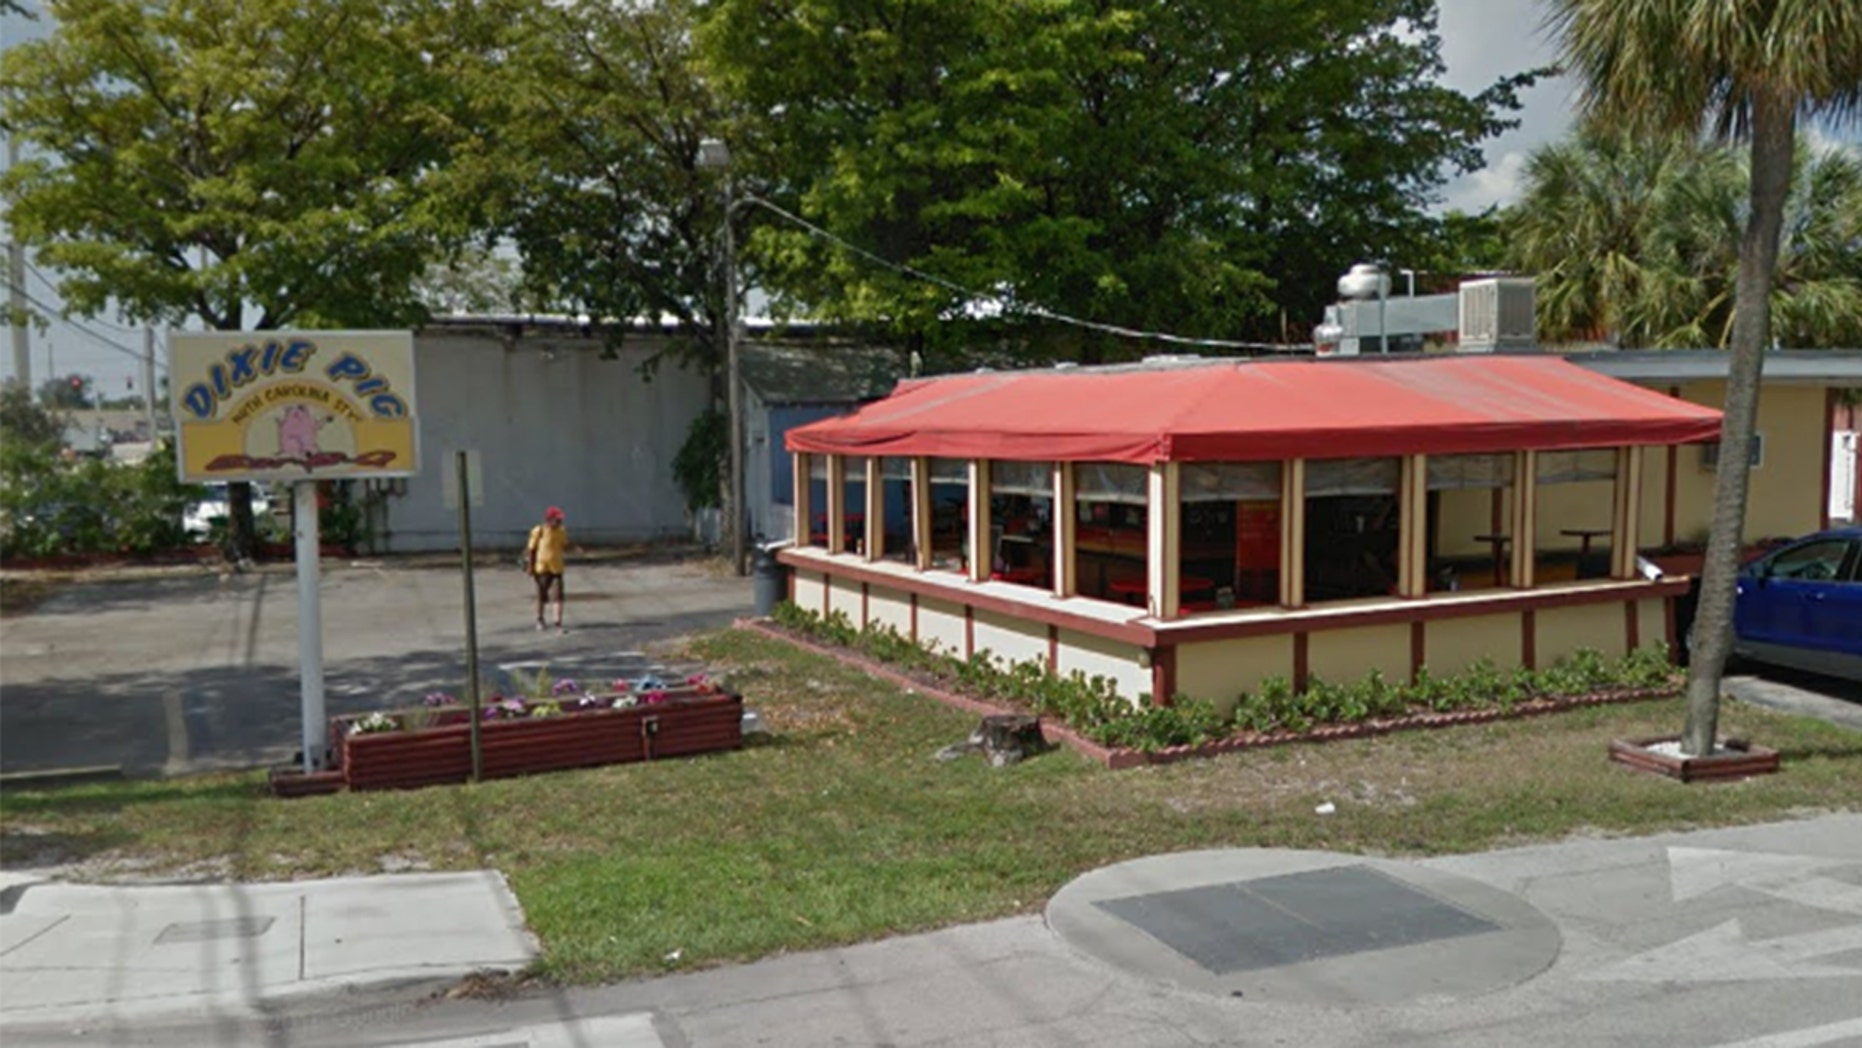 Dixie Pig in Florida was temporarily closed after 14 violations were discovered in the restaurant.